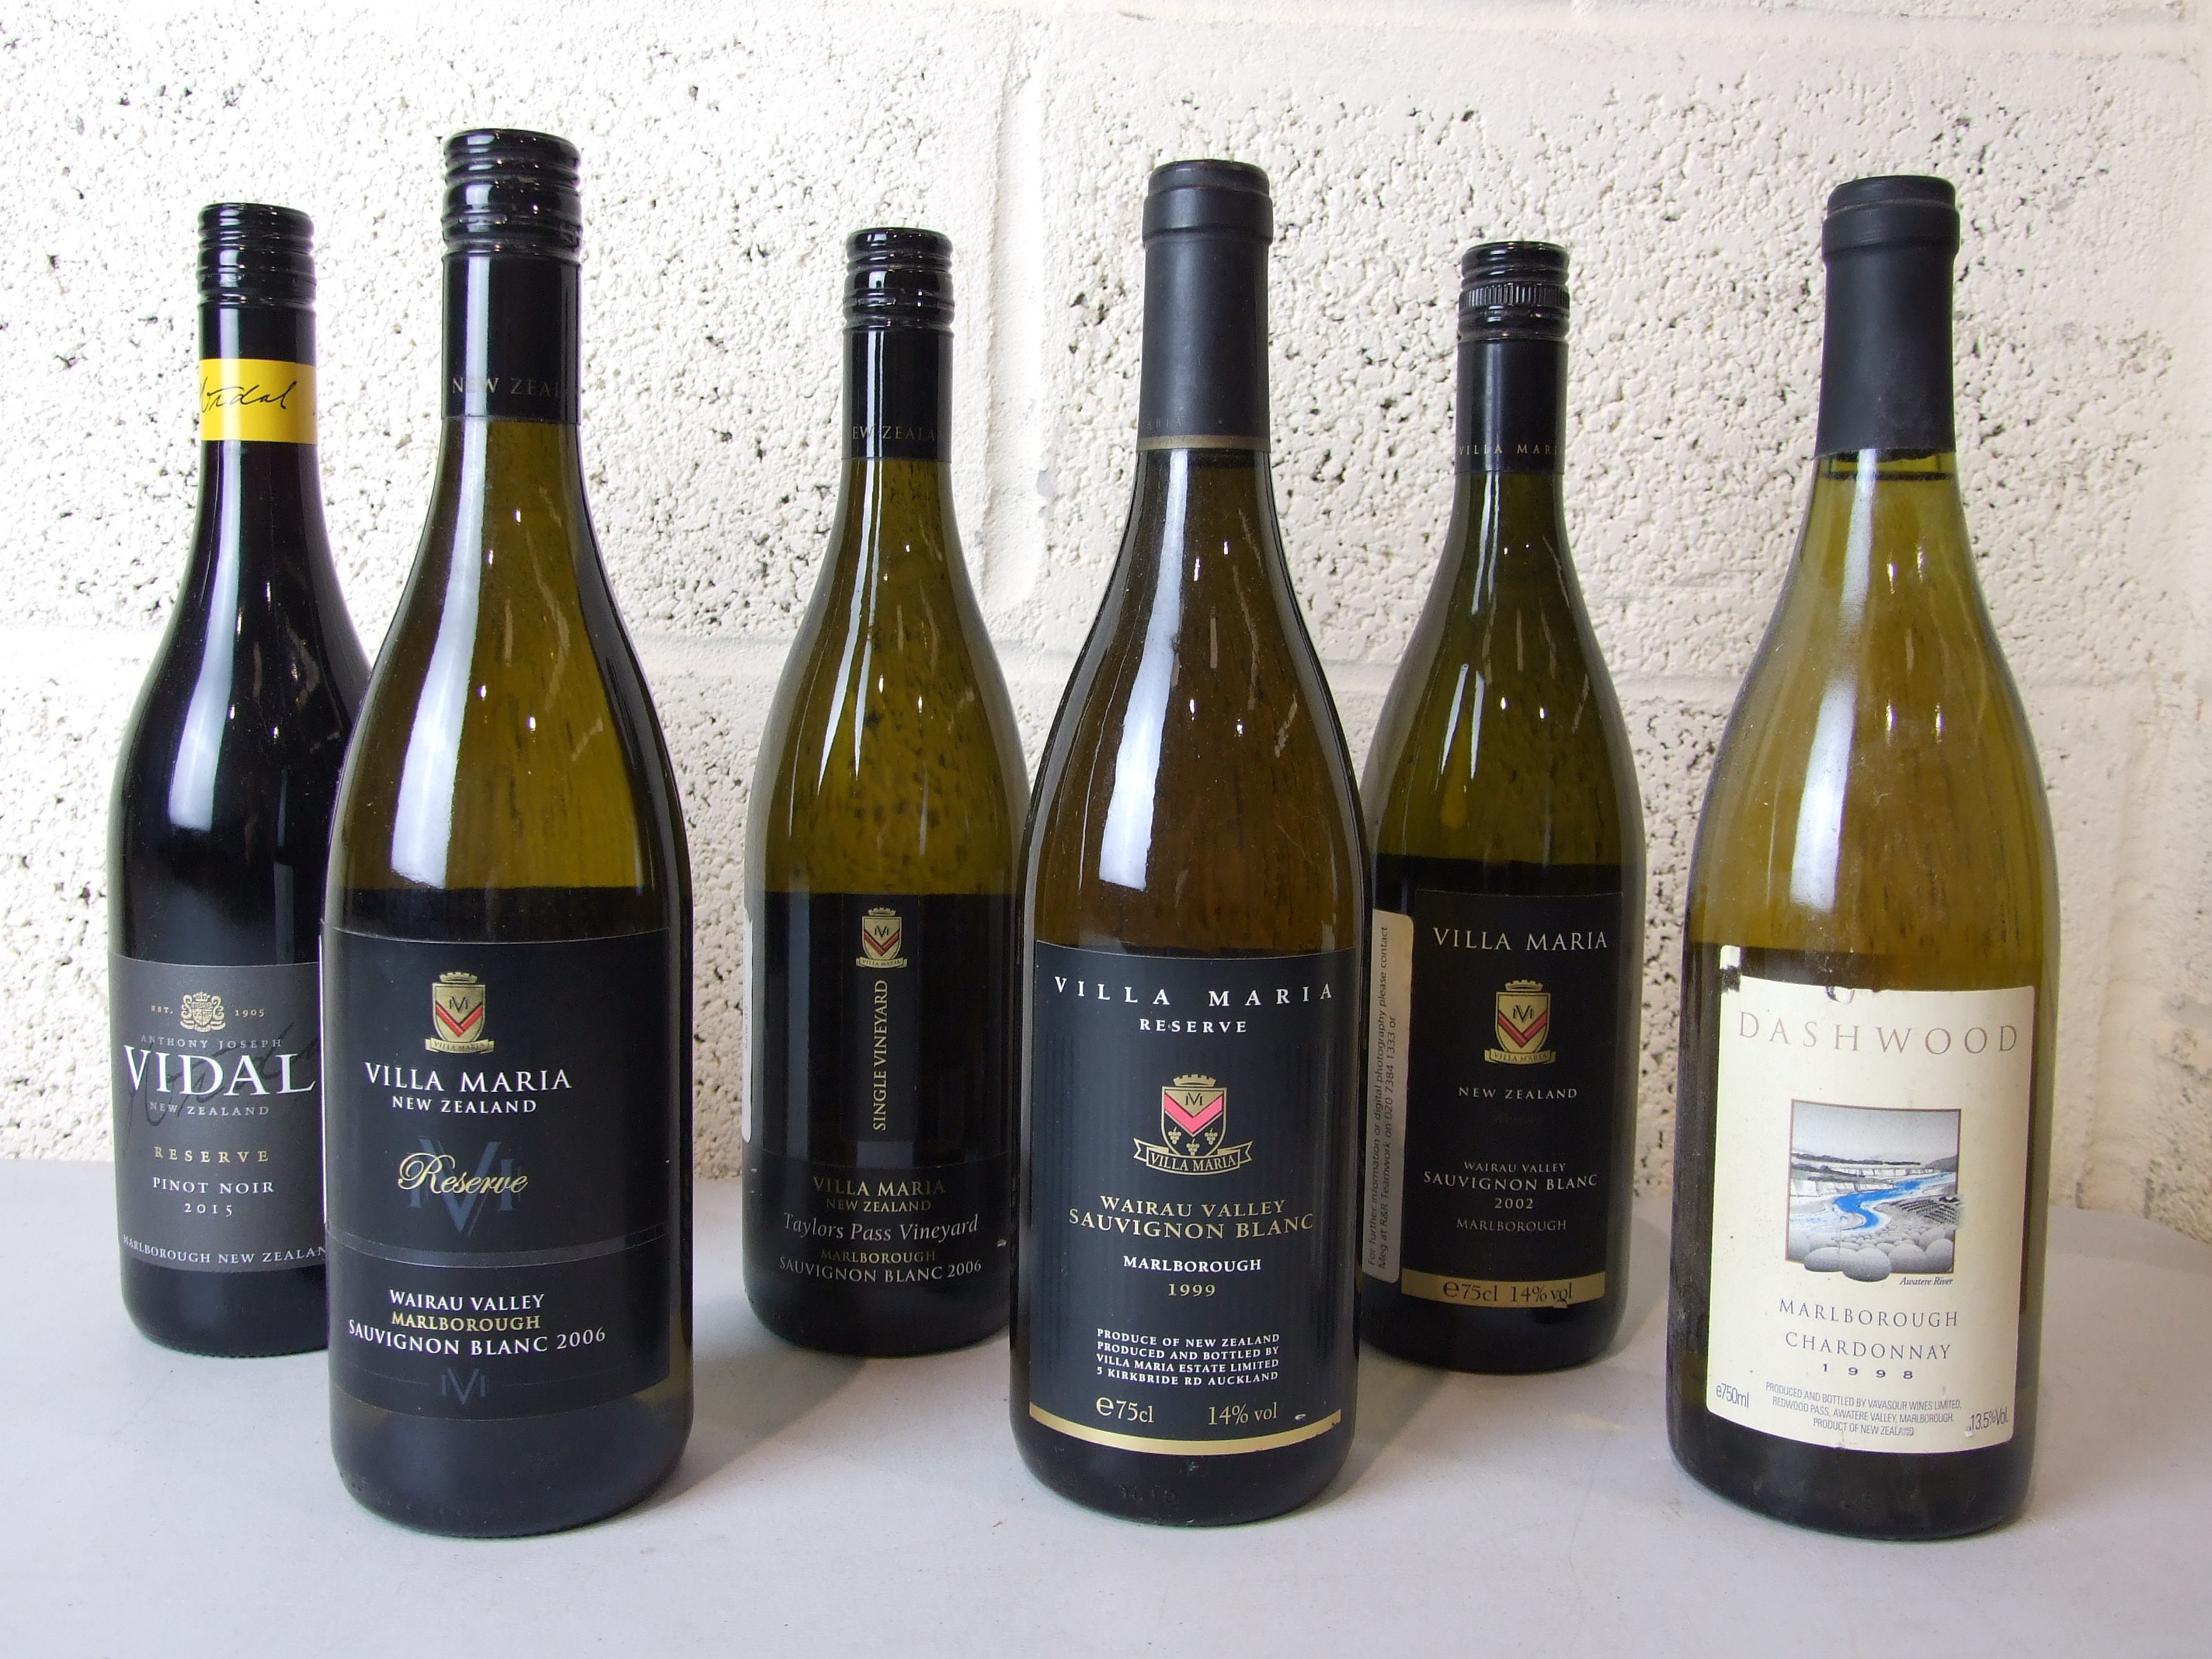 Lot 38 - New Zealand, Villa Maria, 1999, one bottle, 2002, one bottle, and 2006, two bottles, and two others,